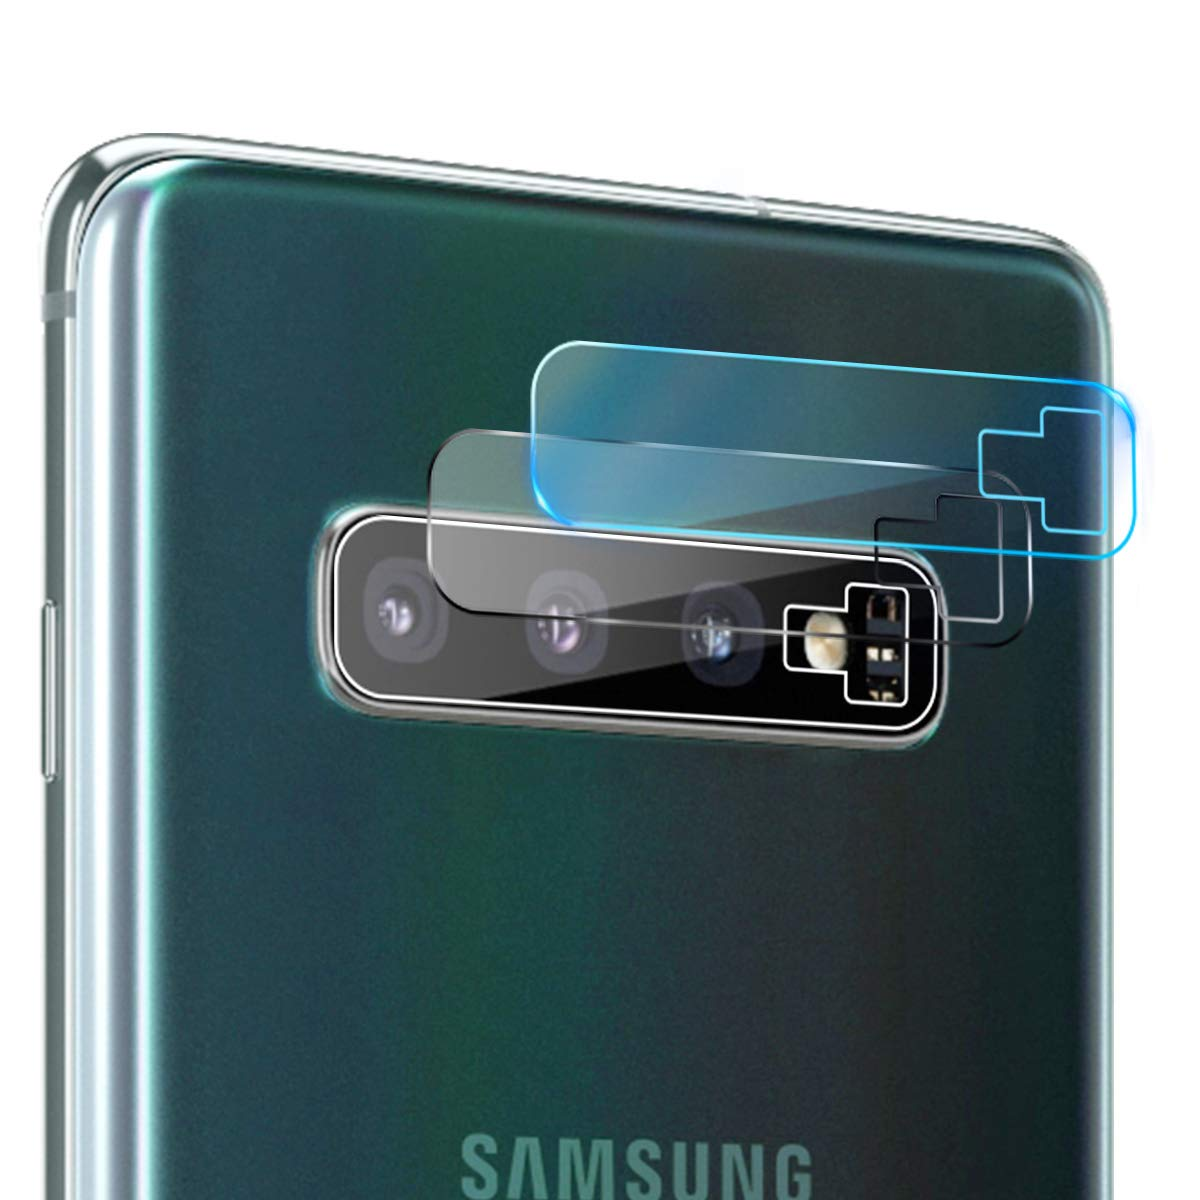 Casetego Compatible with Galaxy S10 Plus/S10 Camera Lens Protector, [3 Pack]Thin Transparent Clear Camera Tempered High Definition Camera Lens Protector for Samsung Galaxy S10 Plus/S10,Clear